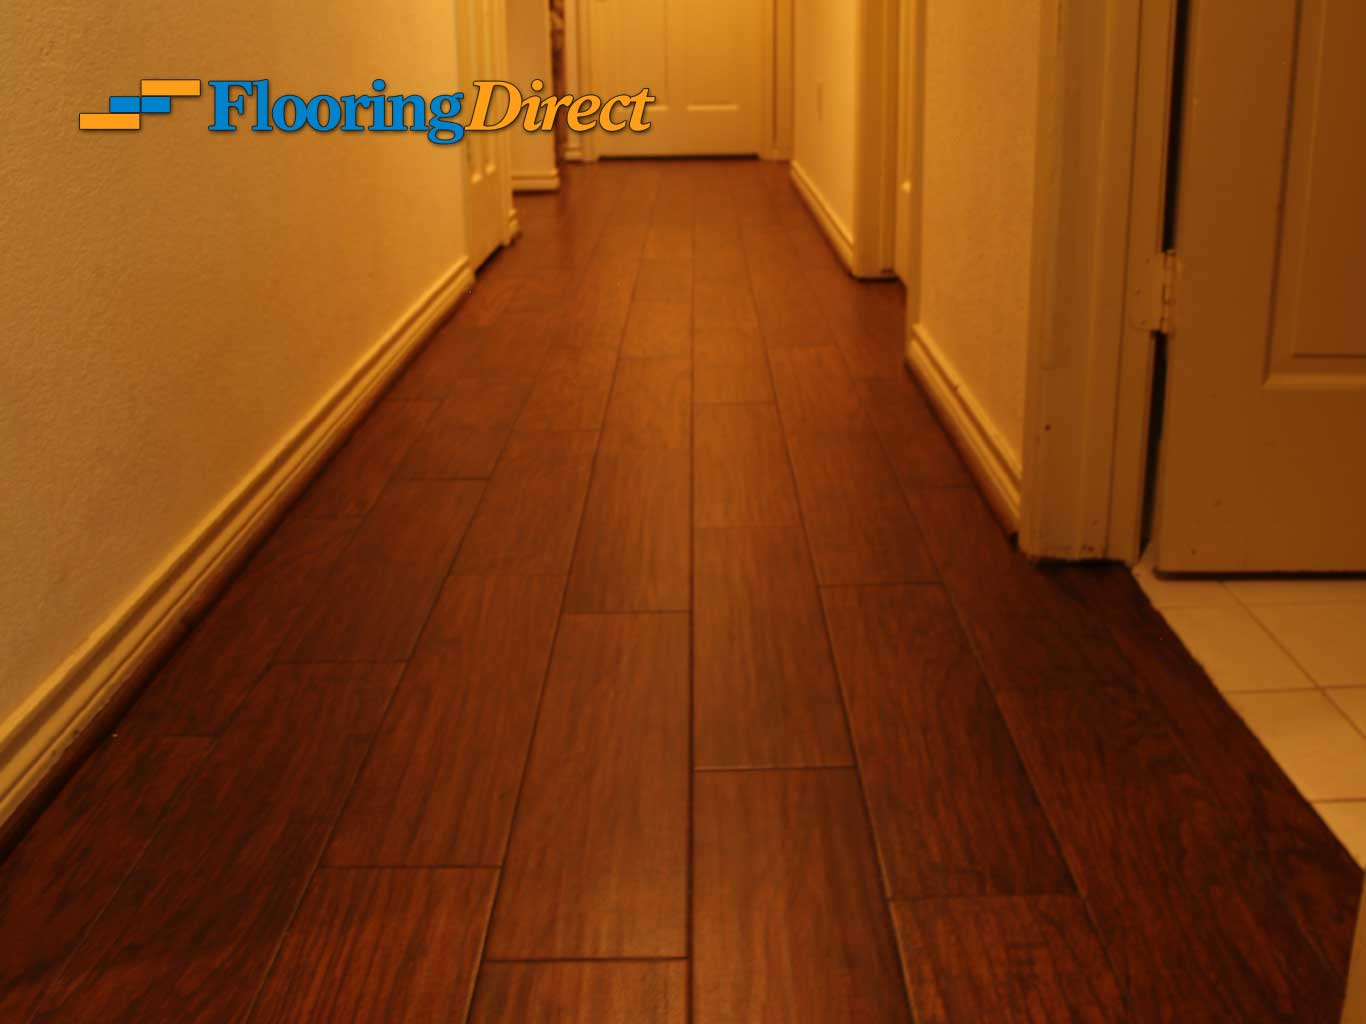 Wood-look Tile Flooring by Flooring Direct serving all of DFW including Hurst.